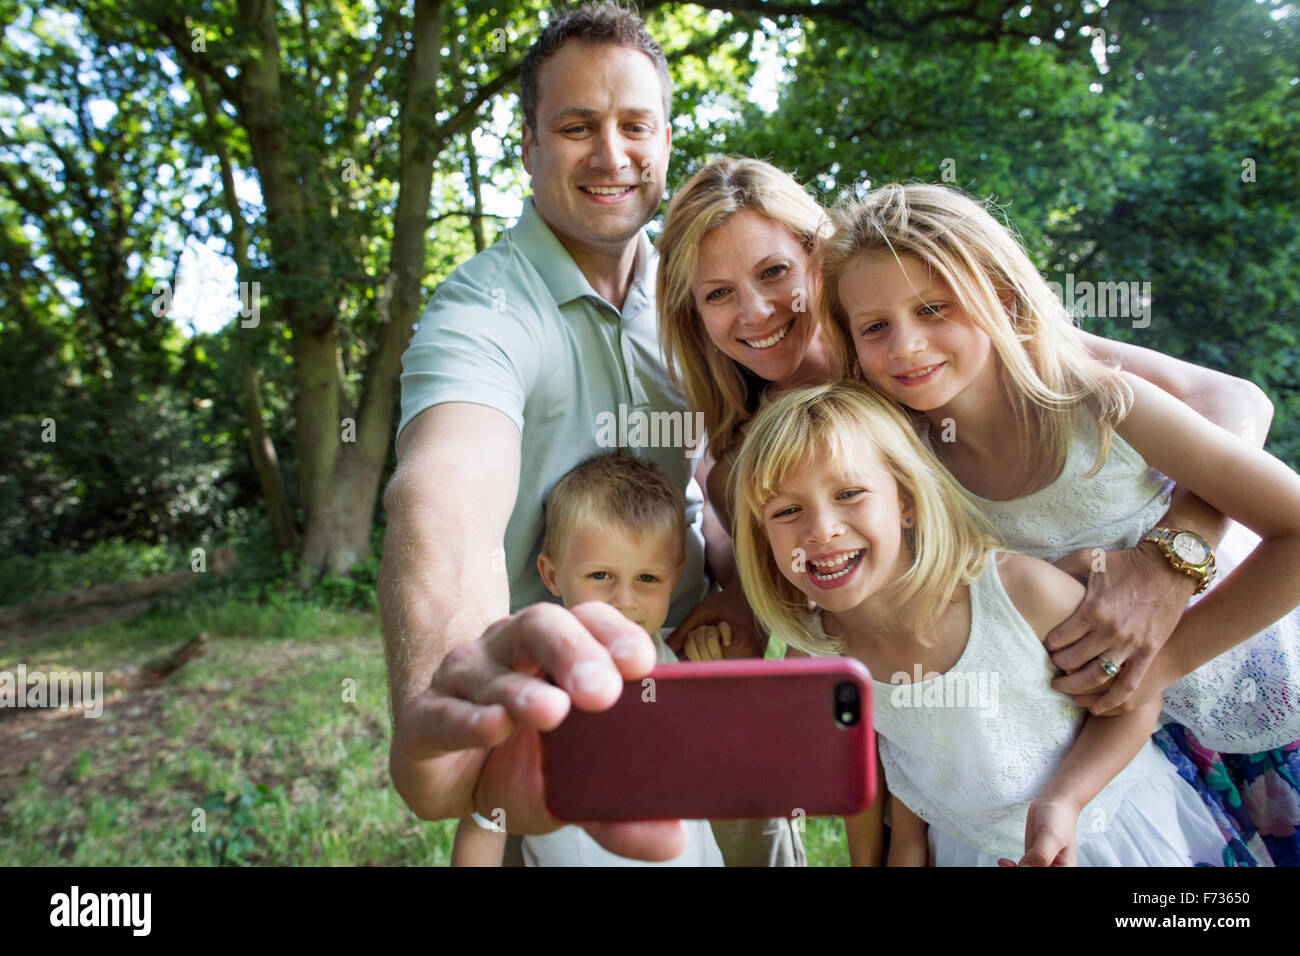 Family with three children, taking a selfie. - Stock Image